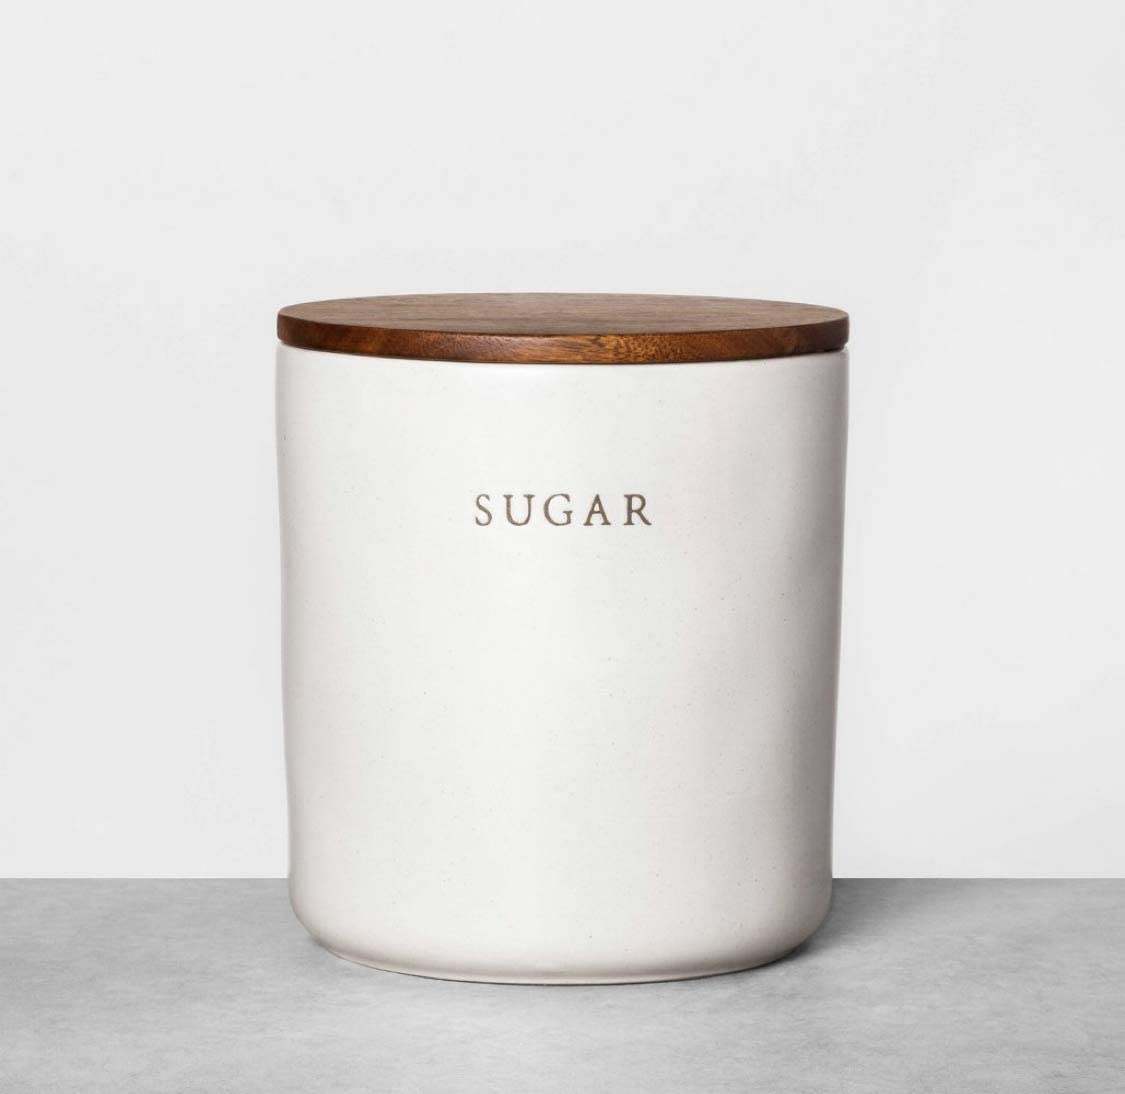 Kitchen Canisters - Hearth & Hand with Magnolia (Sugar)